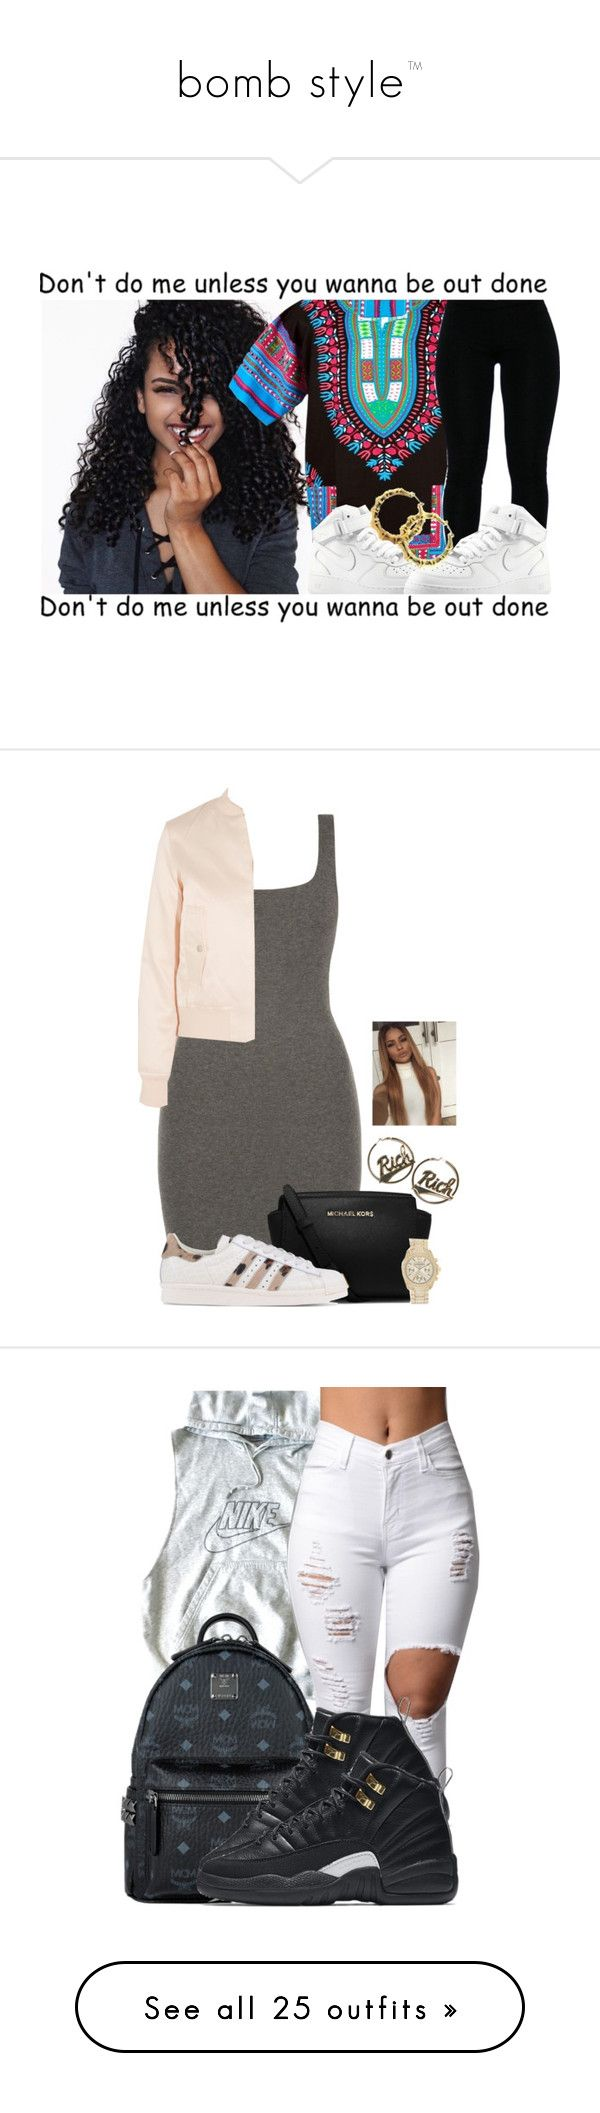 """bomb style™"" by mami-taylor ❤ liked on Polyvore featuring NIKE, Fergie, MICHAEL Michael Kors, adidas Originals, Maje, Saks Fifth Avenue, Joyrich, MCM, Abercrombie & Fitch and Chopard"